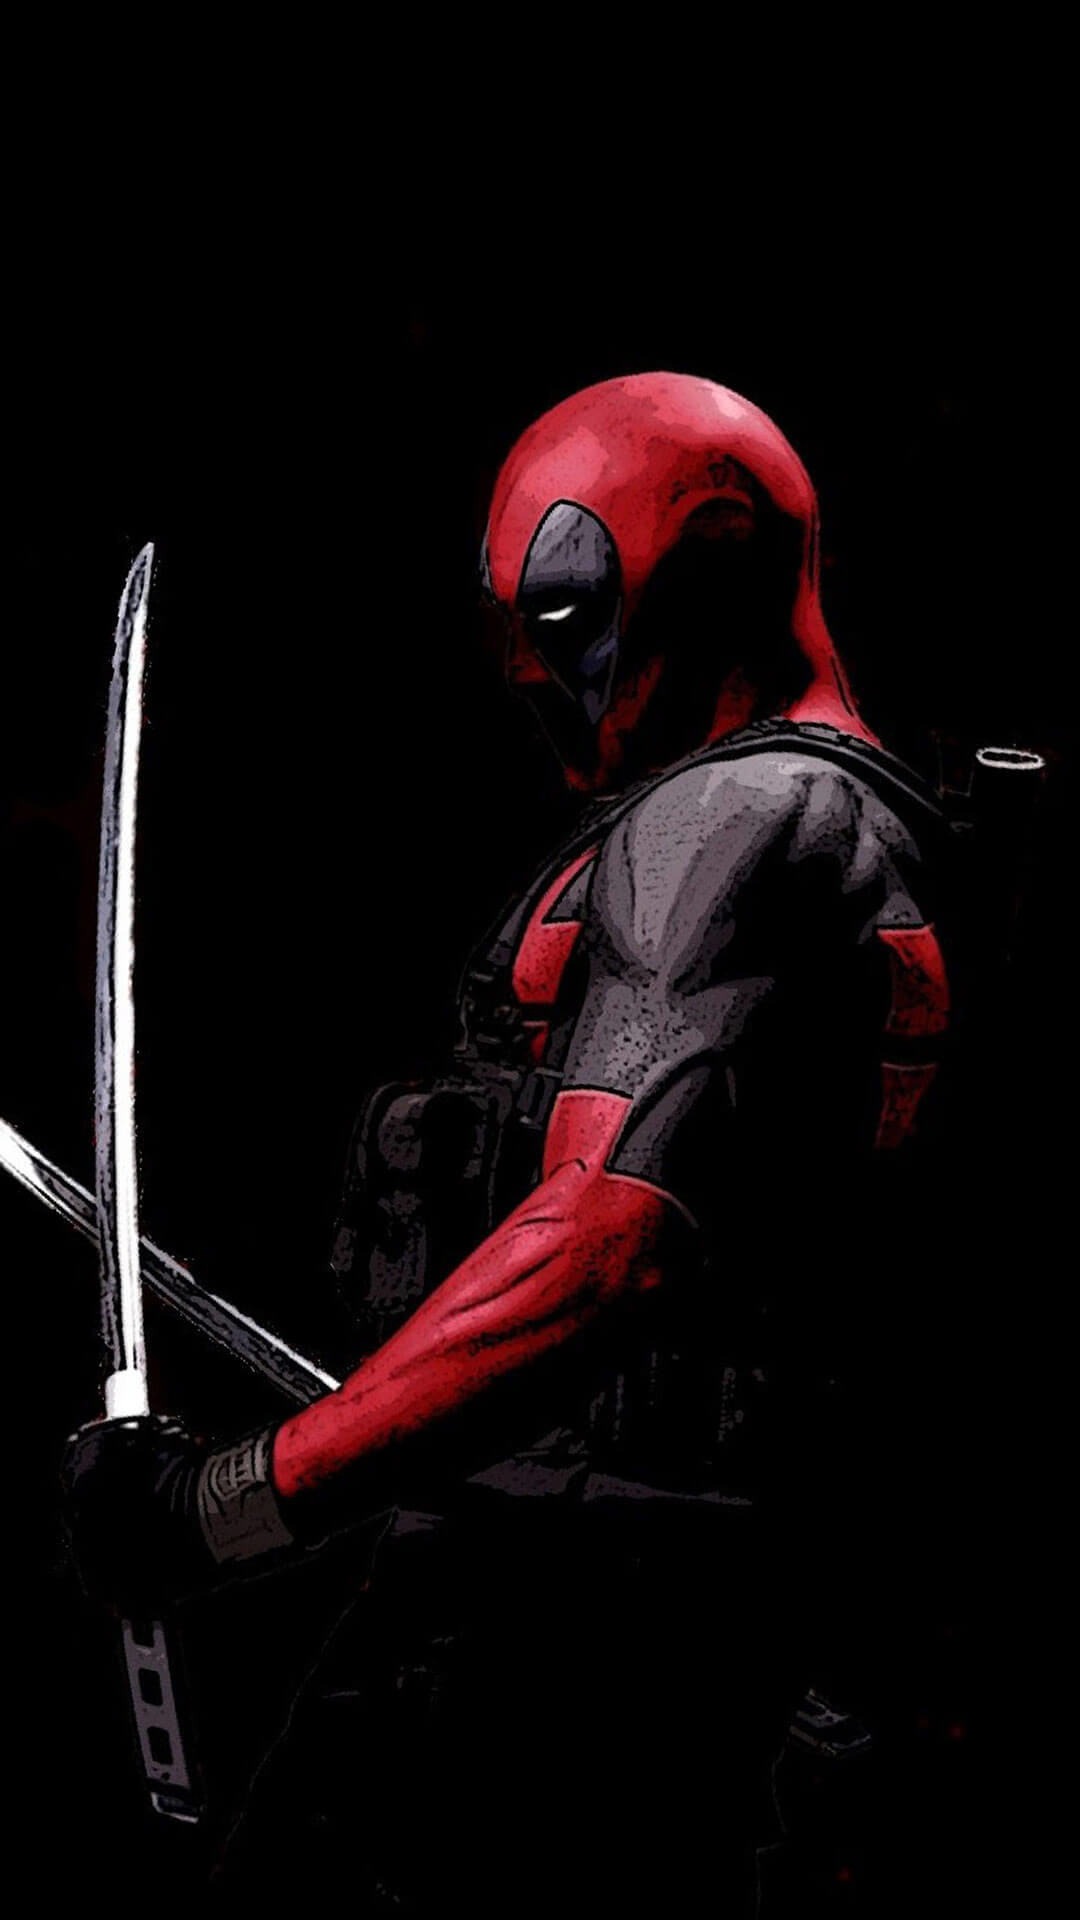 deadpool wallpaper for iphone deadpool iphone wallpaper hd 71 images 13942